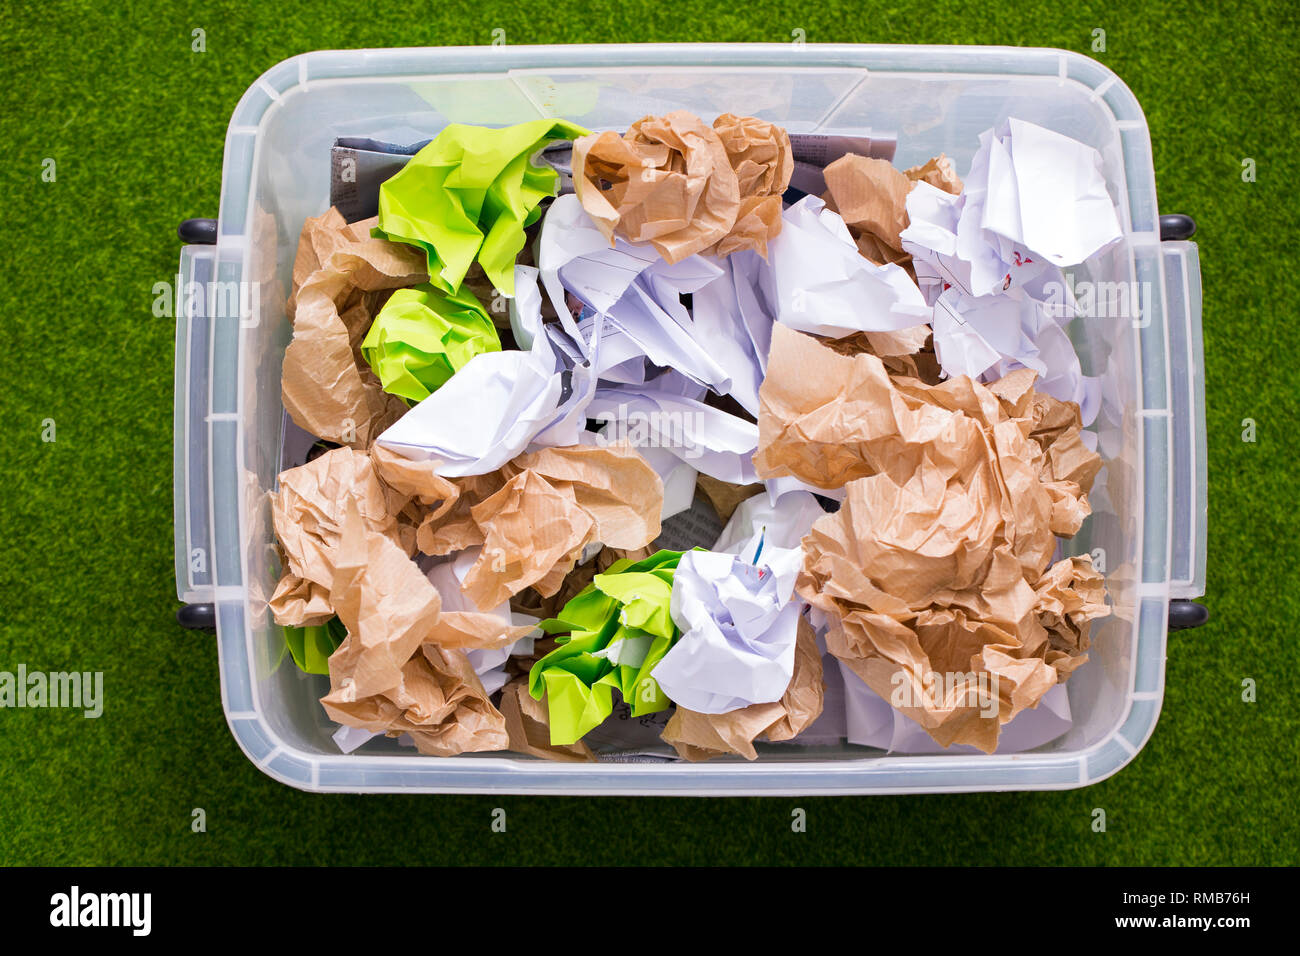 Recycling concept, Garbage for recycling with recycling symbol. Environmental protection concept photo. 071 - Stock Image